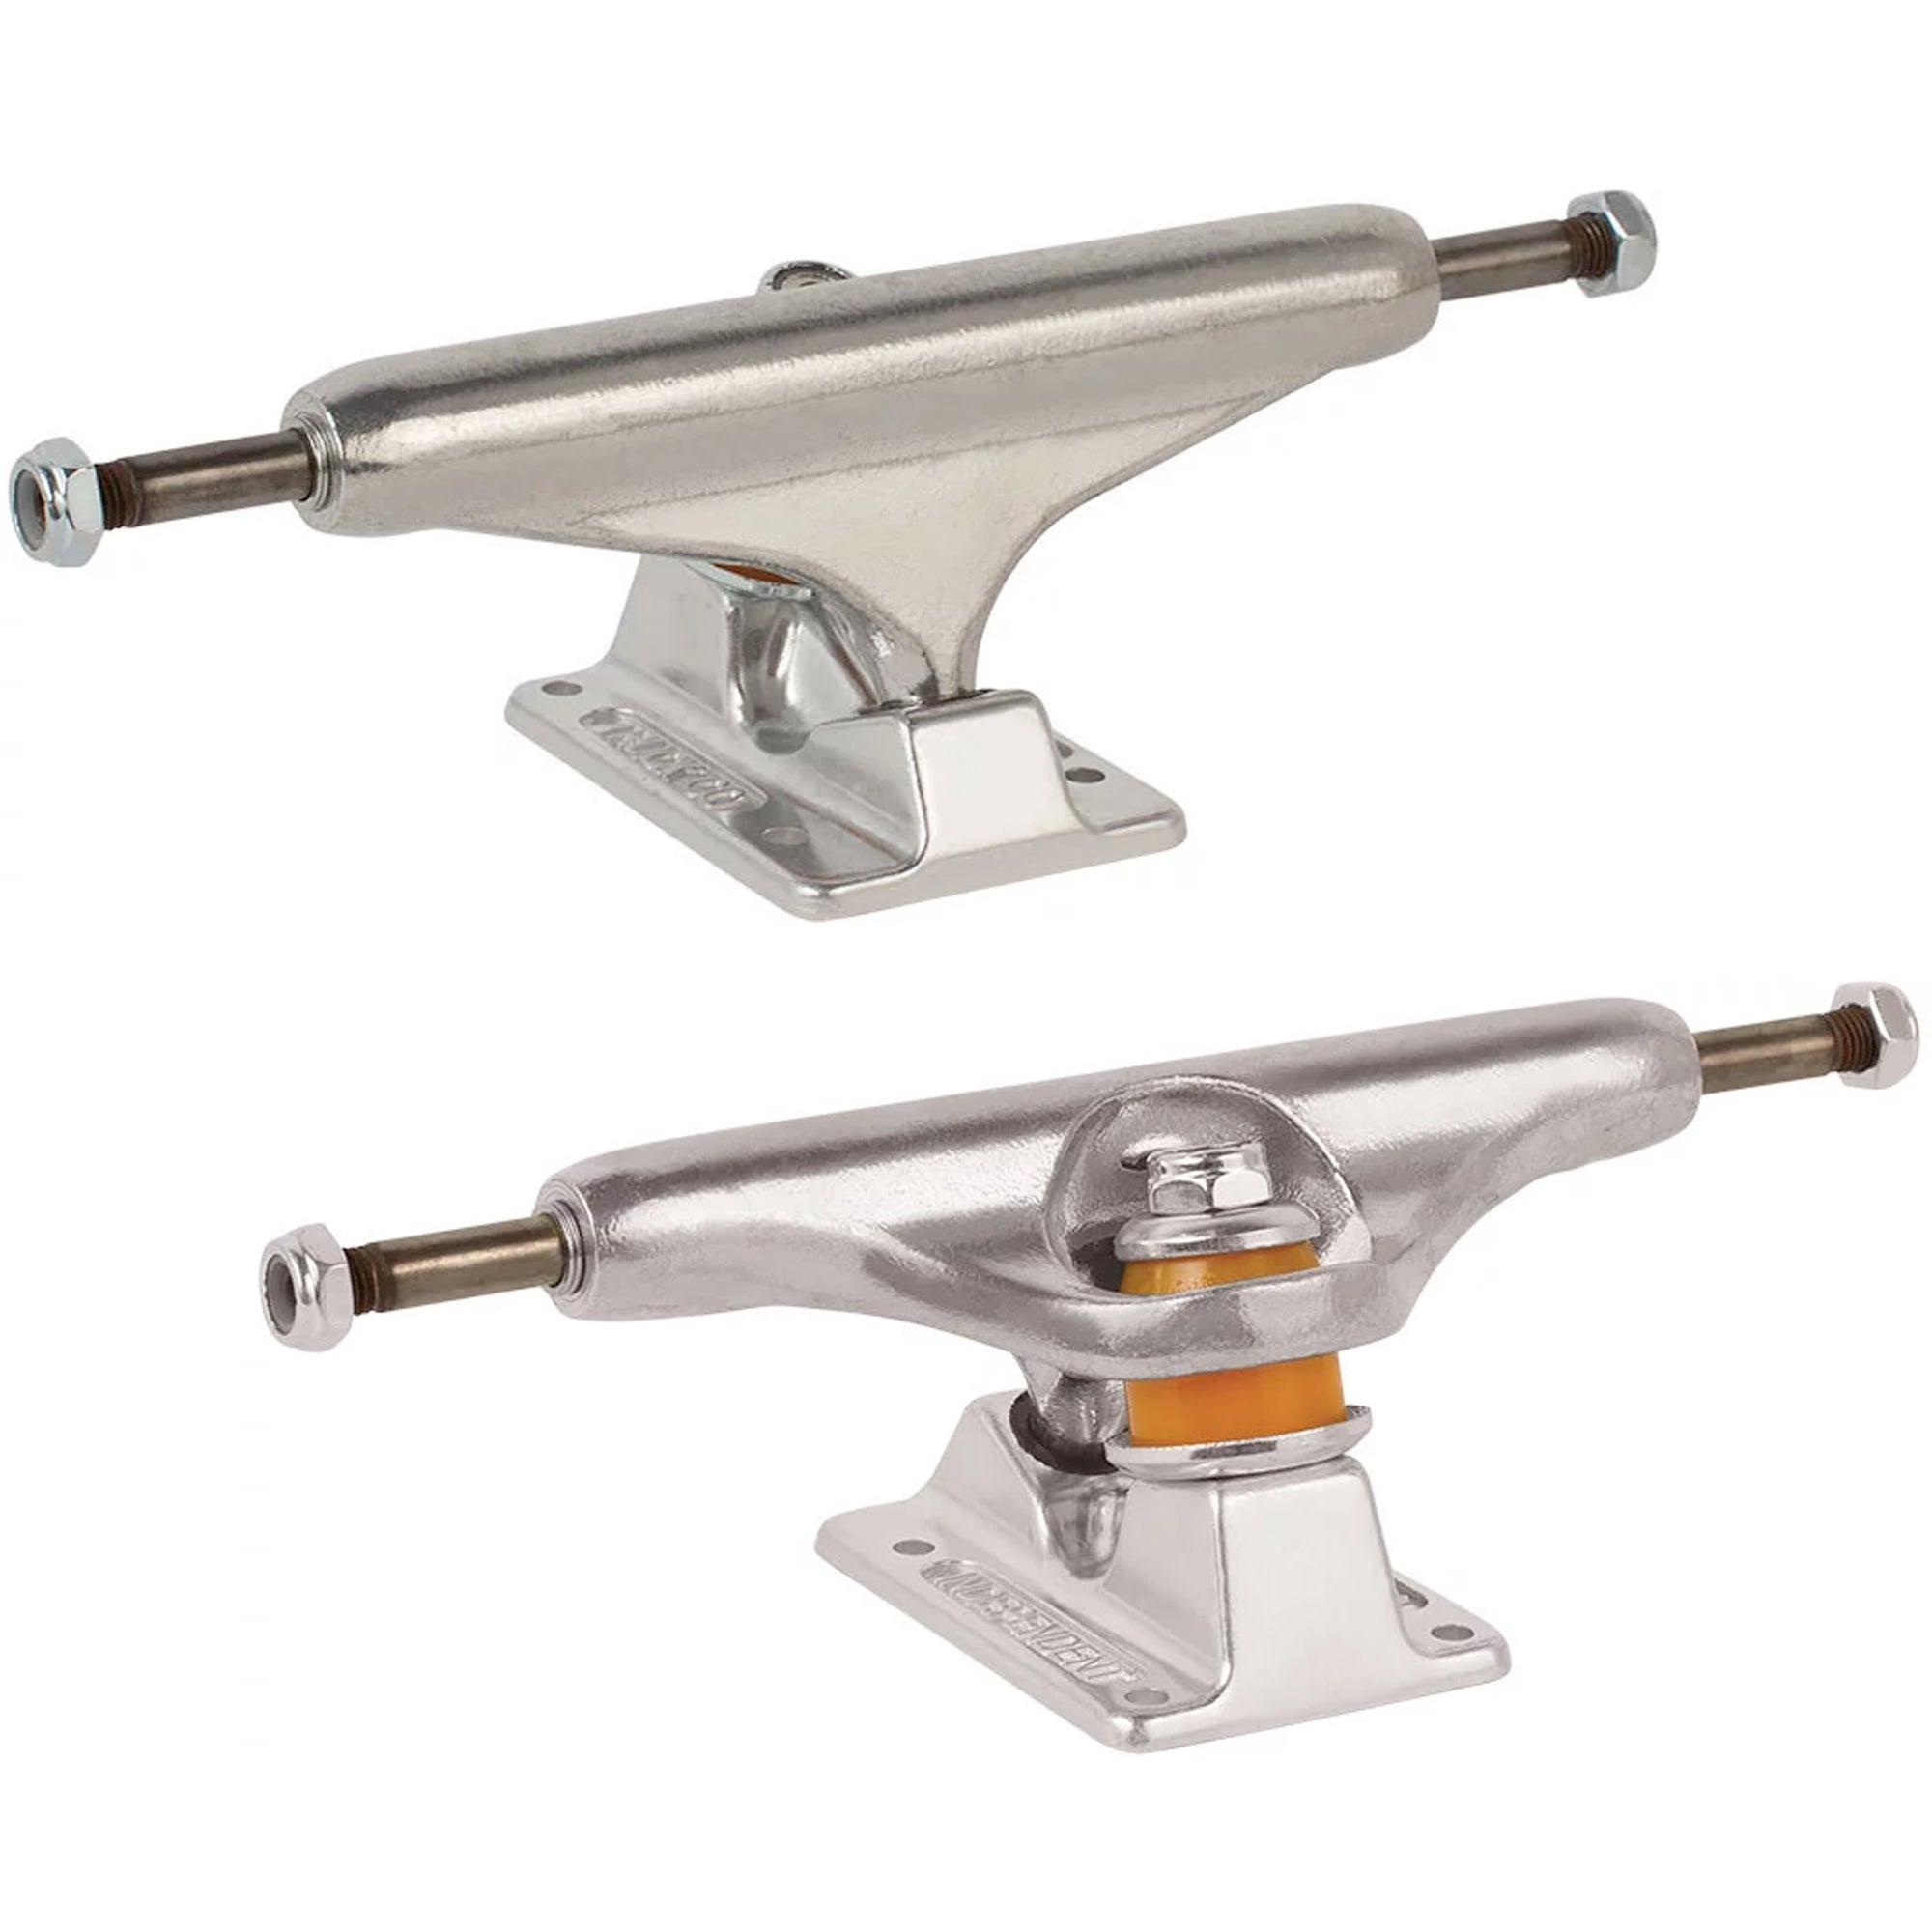 Independent Stage 11 Forged Titanium Hollow 159mm Skateboard Trucks